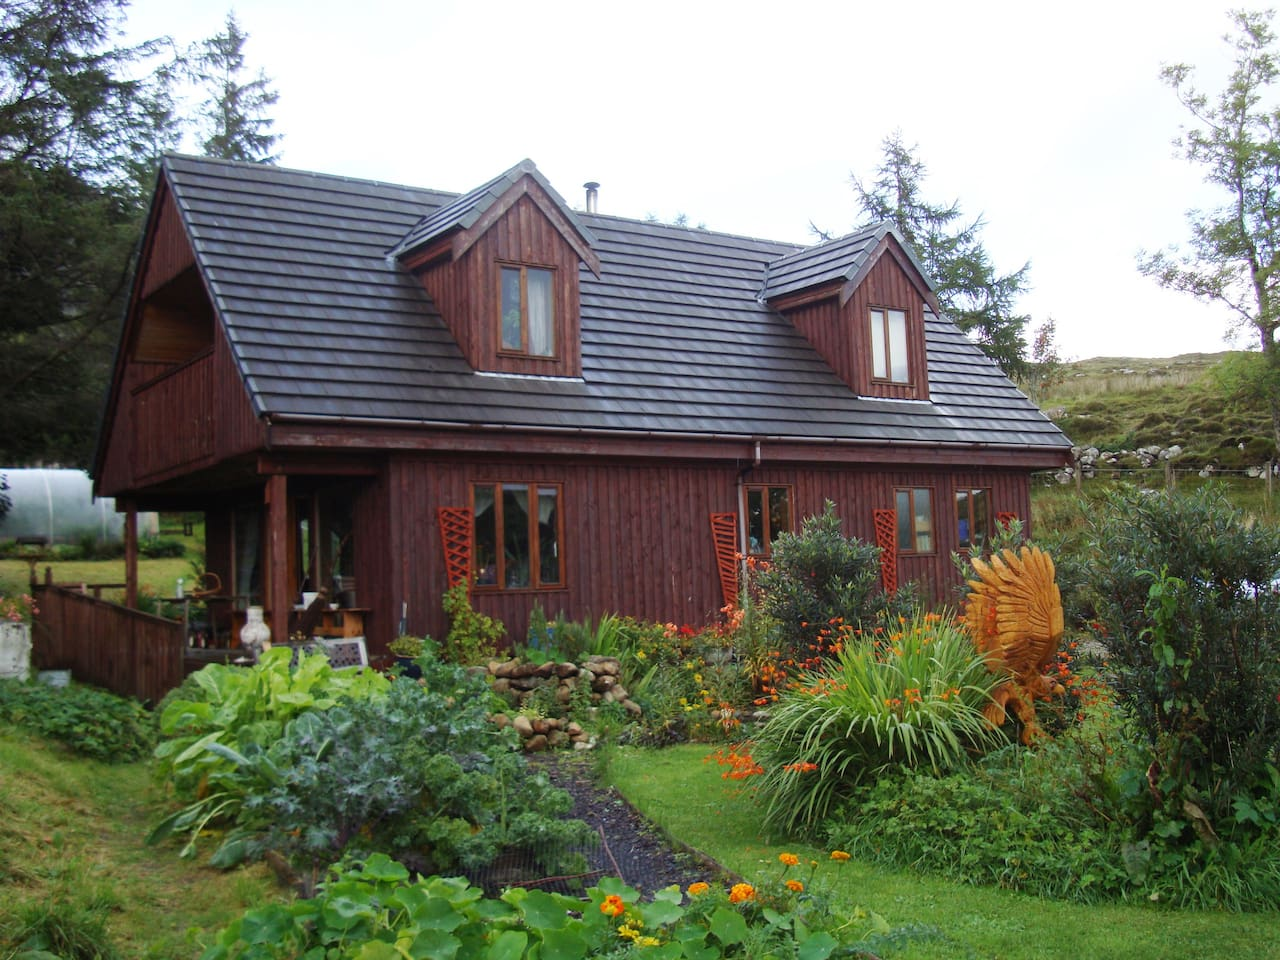 Bed and Breakfast in peaceful surroundings with stunning mountain views in the village of Torrin, Isle of Skye.